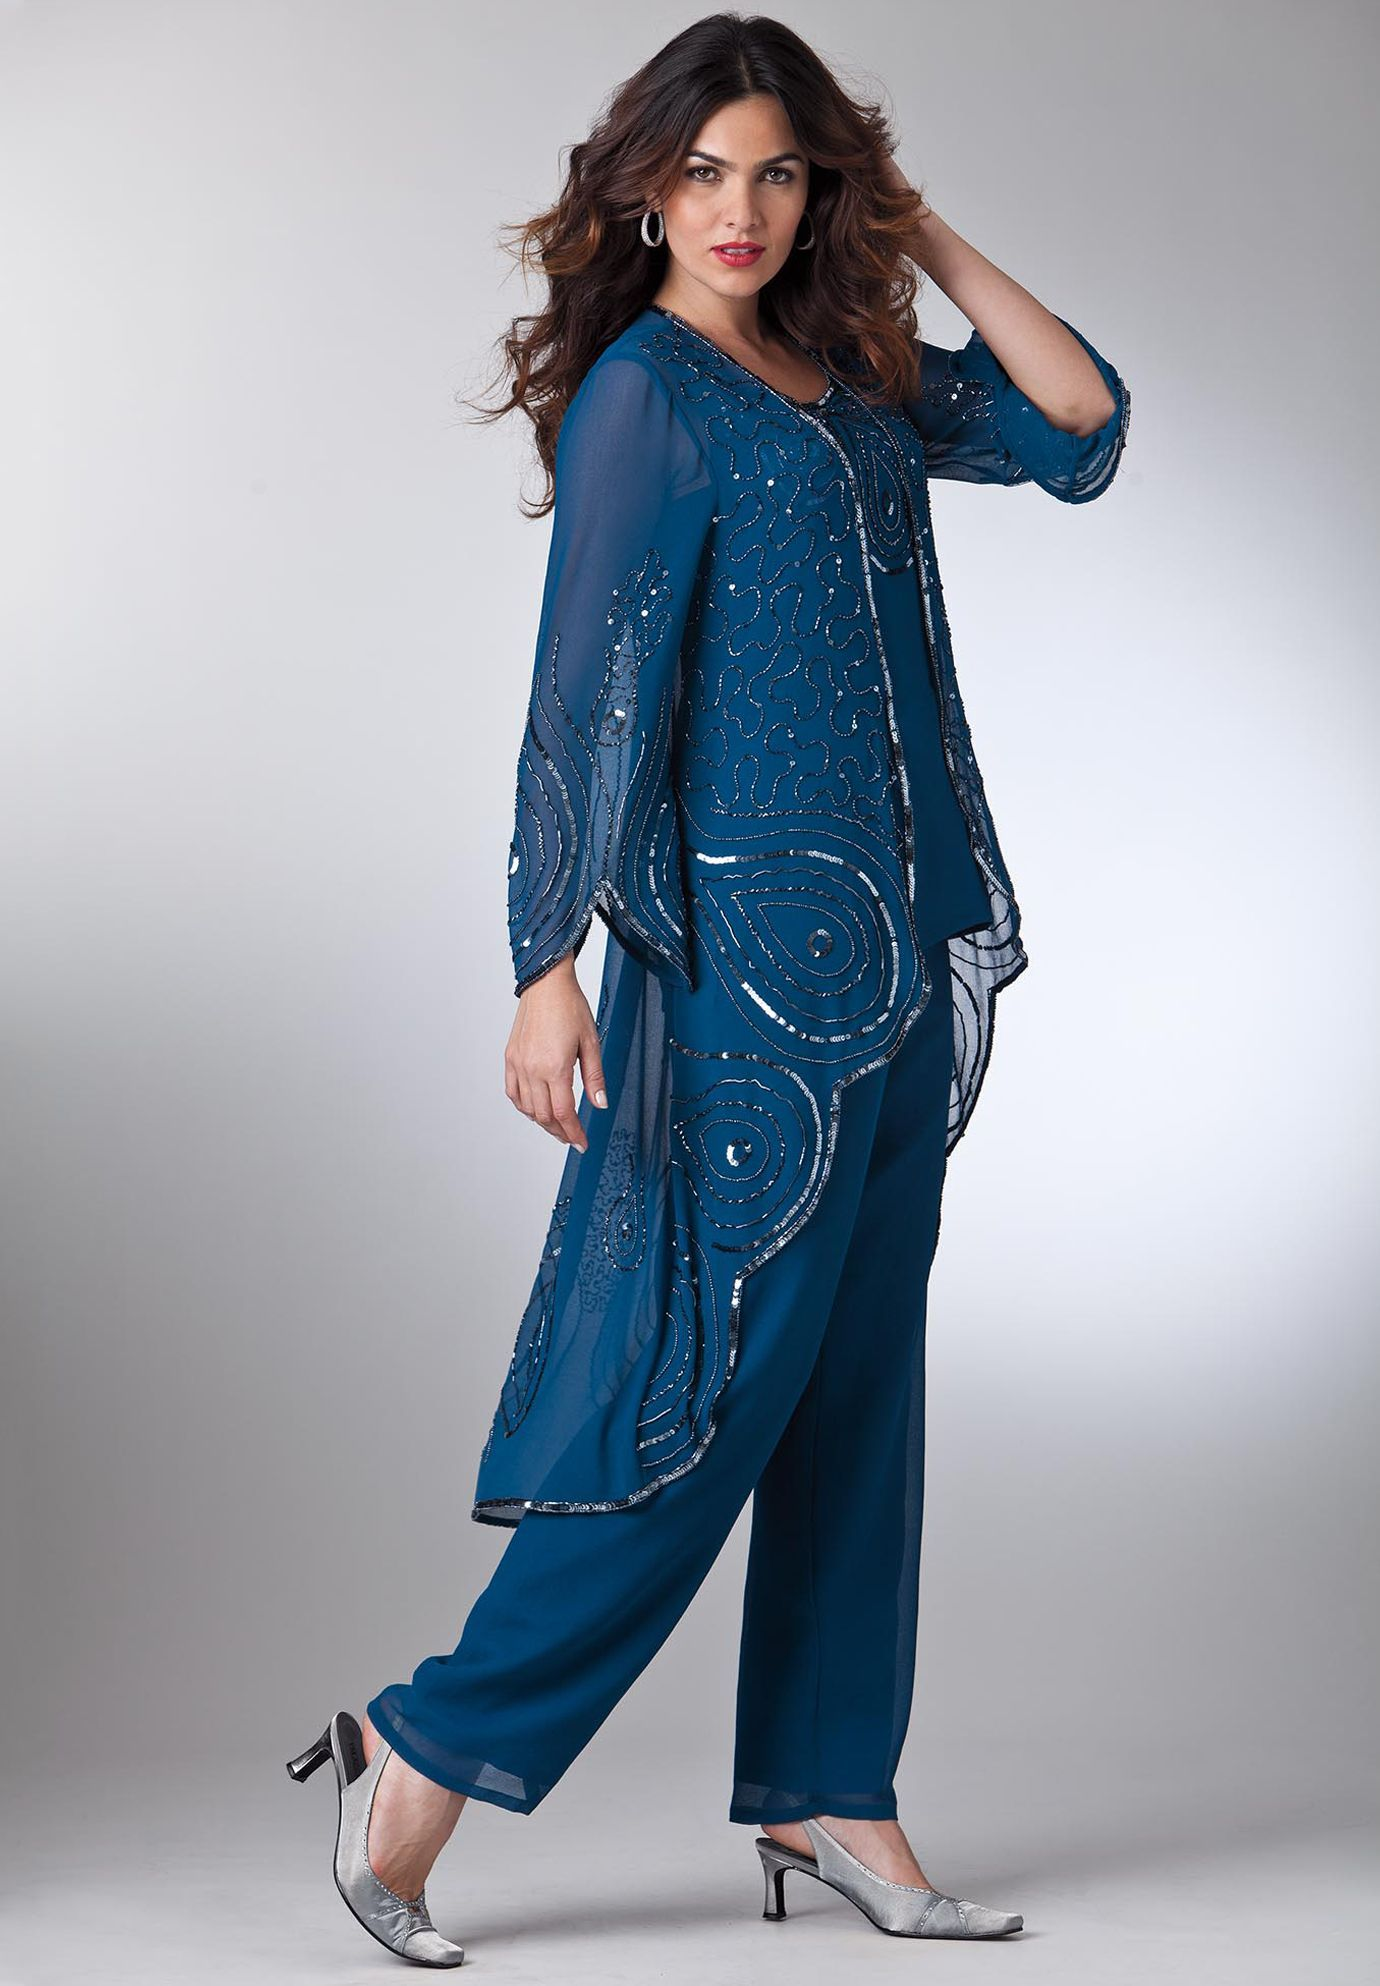 Plus Size Formal Pant Suits and Plus Size Cocktail Pants Suits are a ...